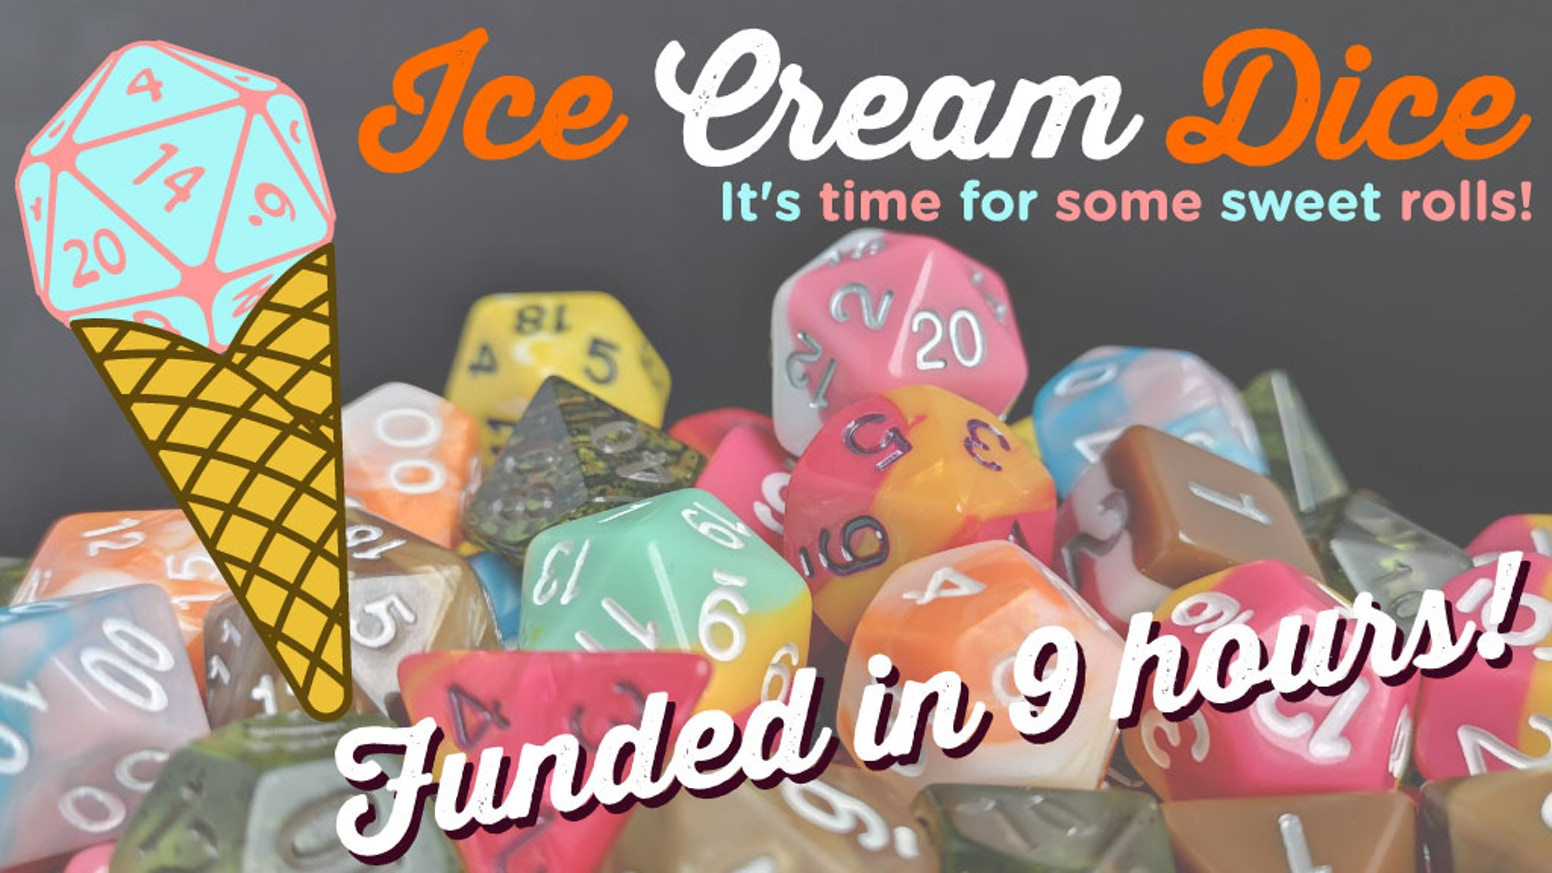 Ice Cream themed dice for your favorite RPG or boardgame. Ice Cream Dice brings your favorite ice cream flavors to your gaming table.